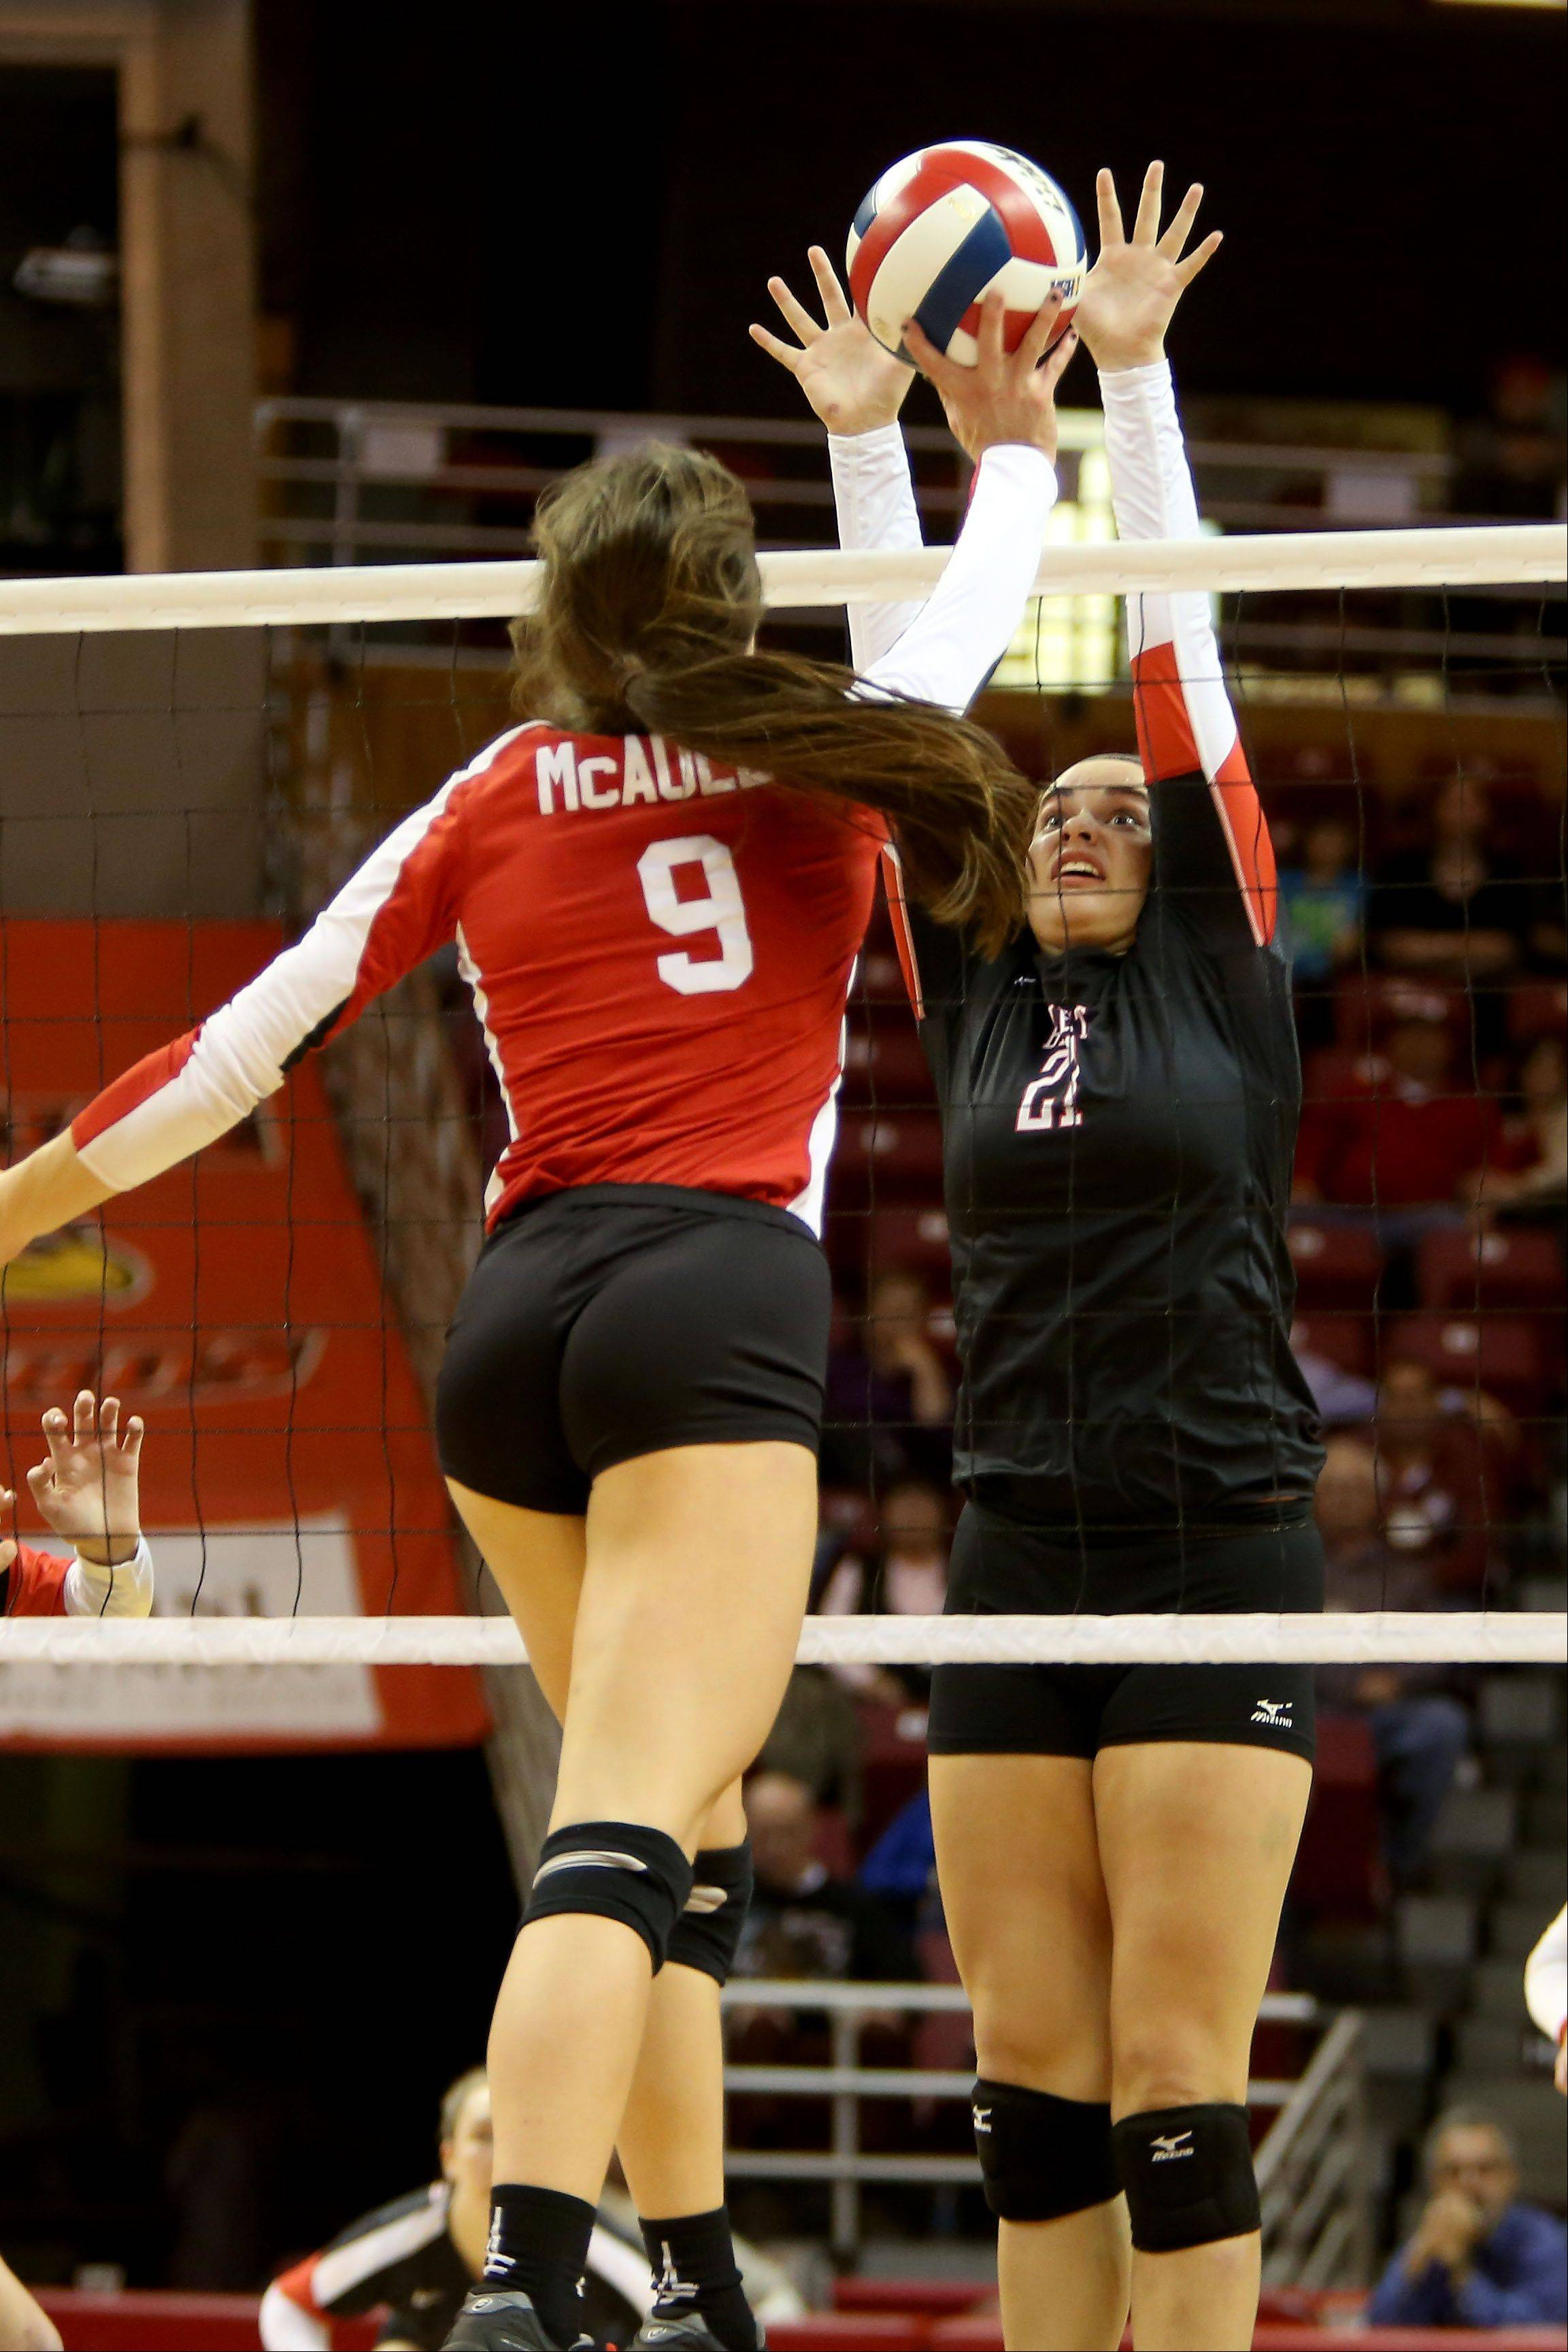 Ashley Hitchcock of Benet goes up to block a shot by Maggie Scanlon of Mother McAuley in the Class 4A championship girls volleyball match on Saturday in Normal.